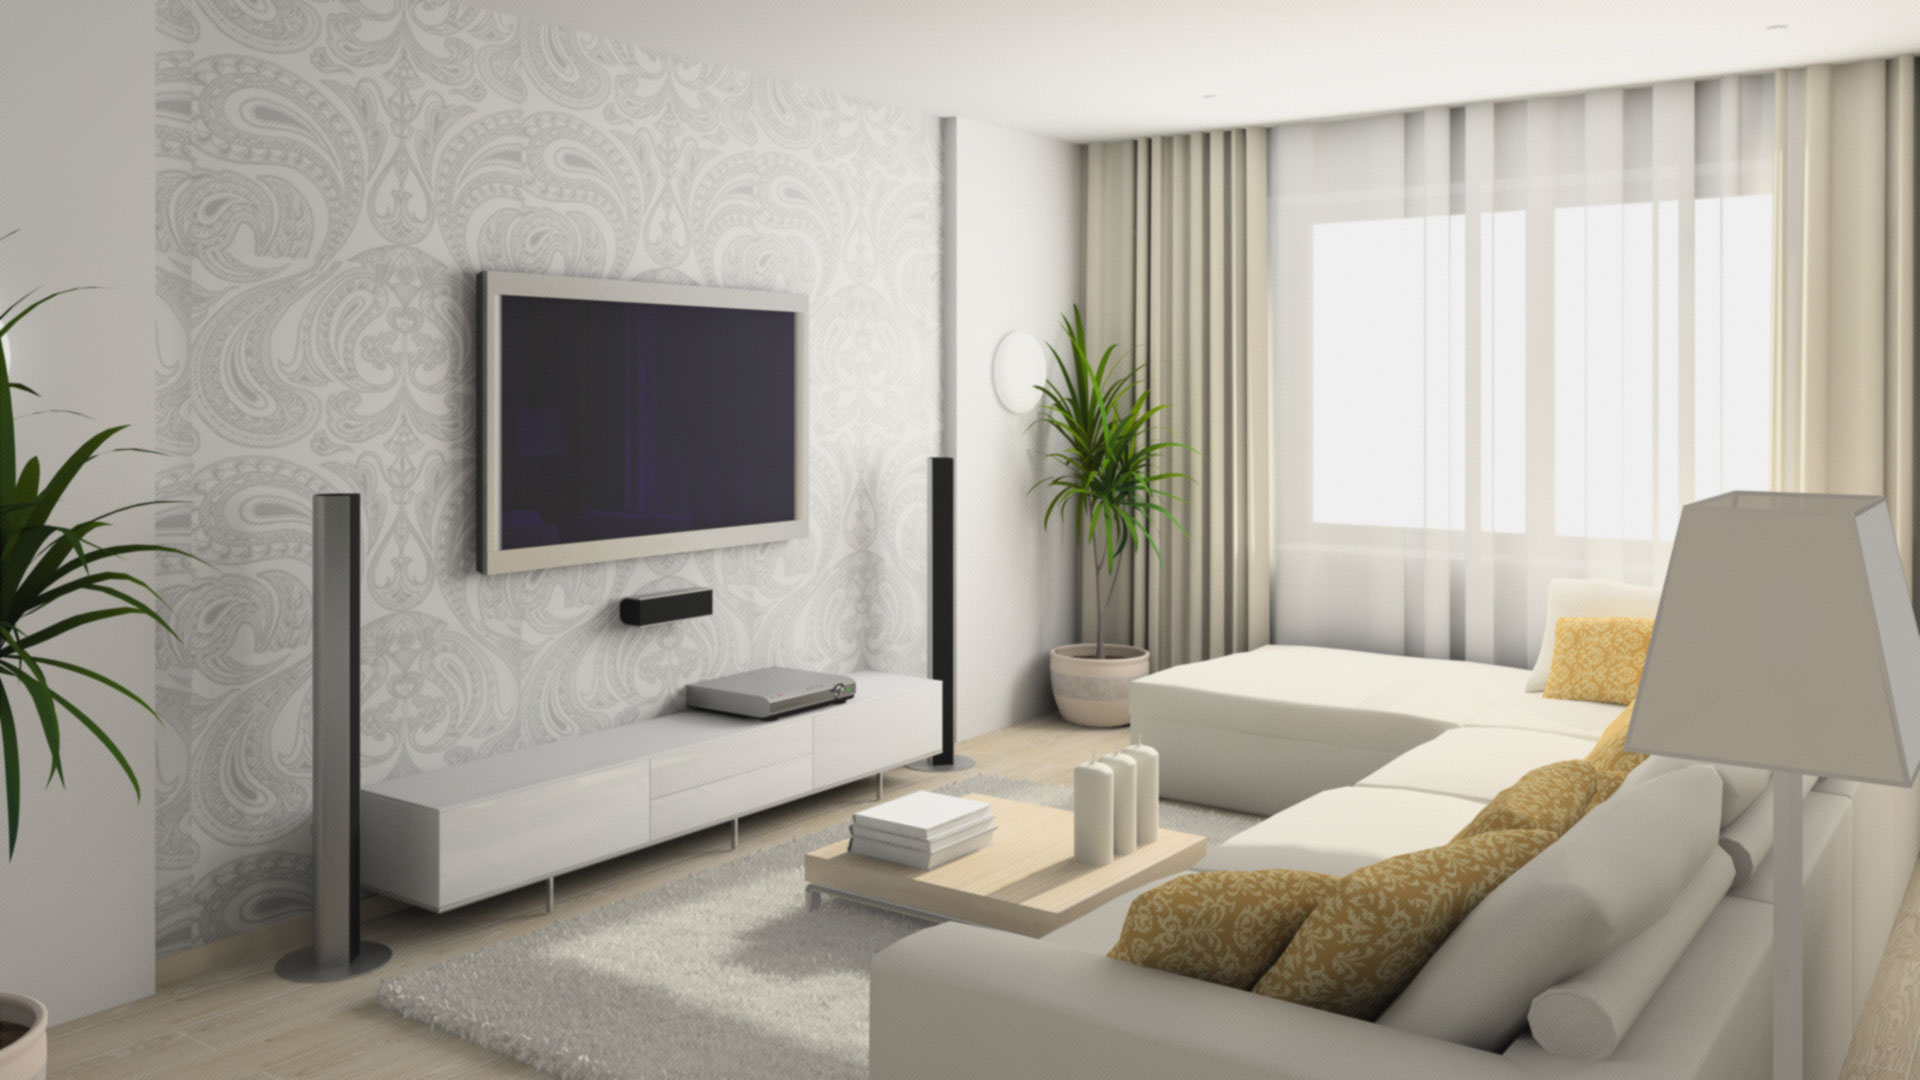 control hi products del photography drapes our motorized solutions draperies lutron product drapery remote